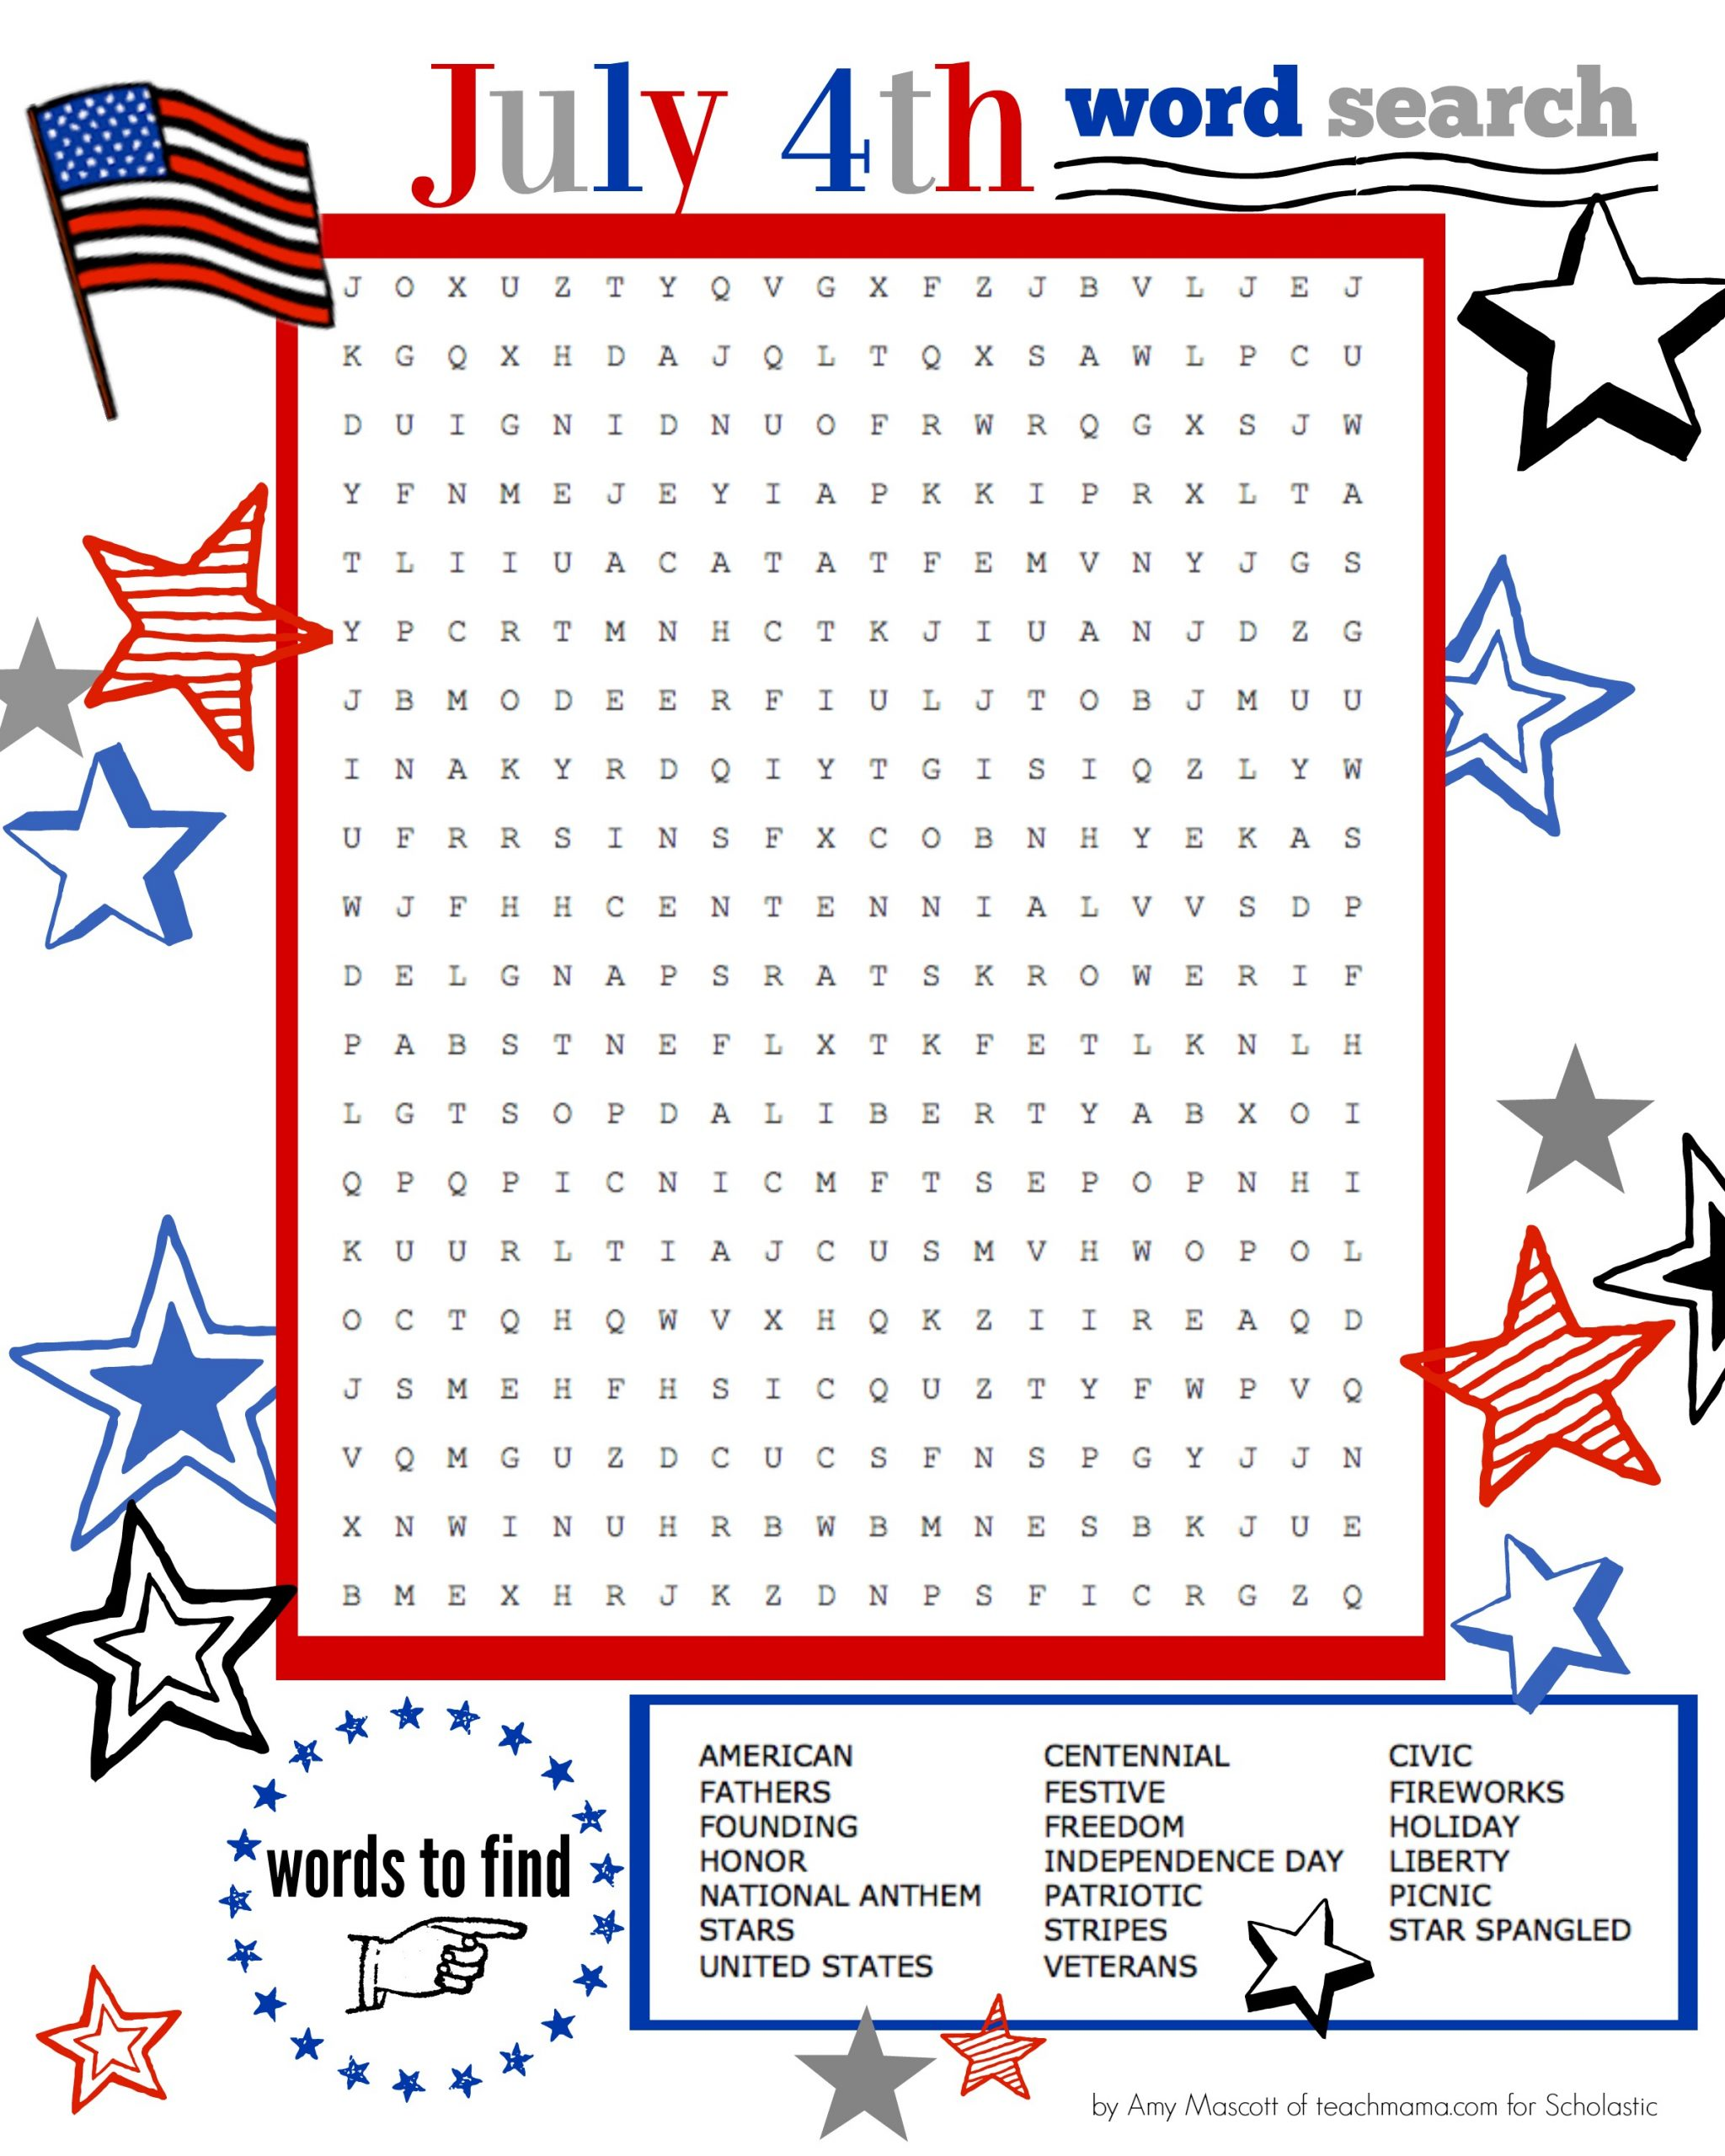 Superstar Celebration: July 4Th Word Search Printable